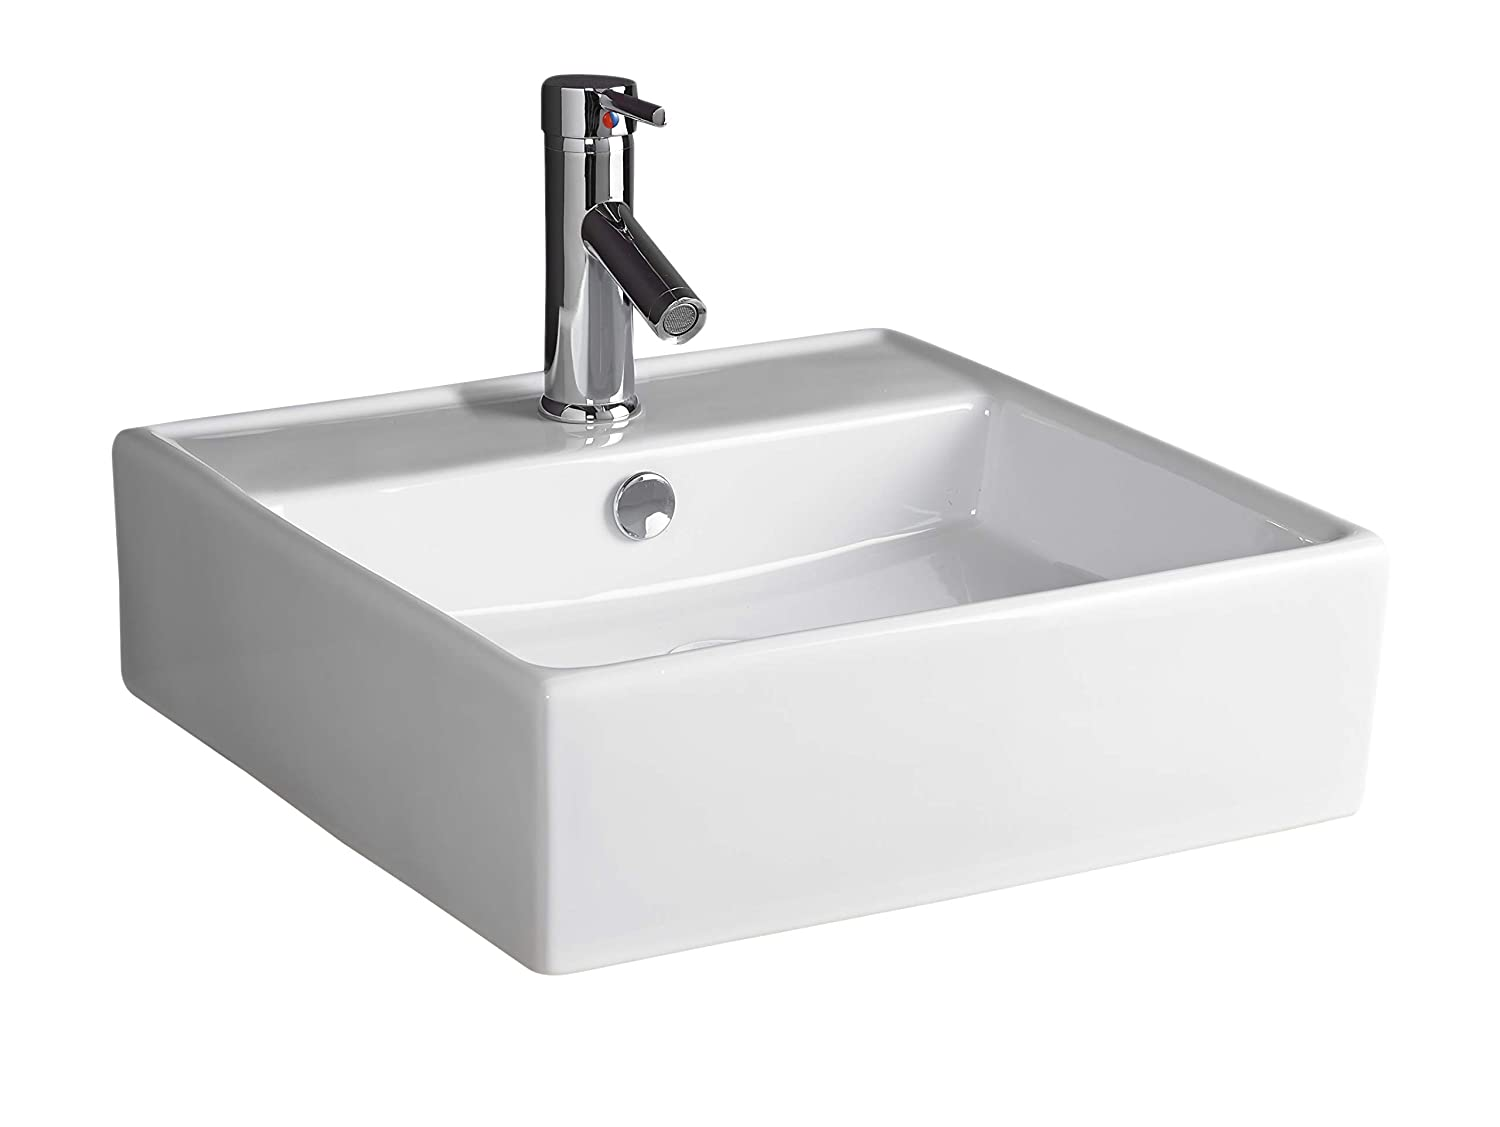 Clickbasin Square Sink Wall Hung Family Bathroom Basin 460mm x 460mm NAPOLI